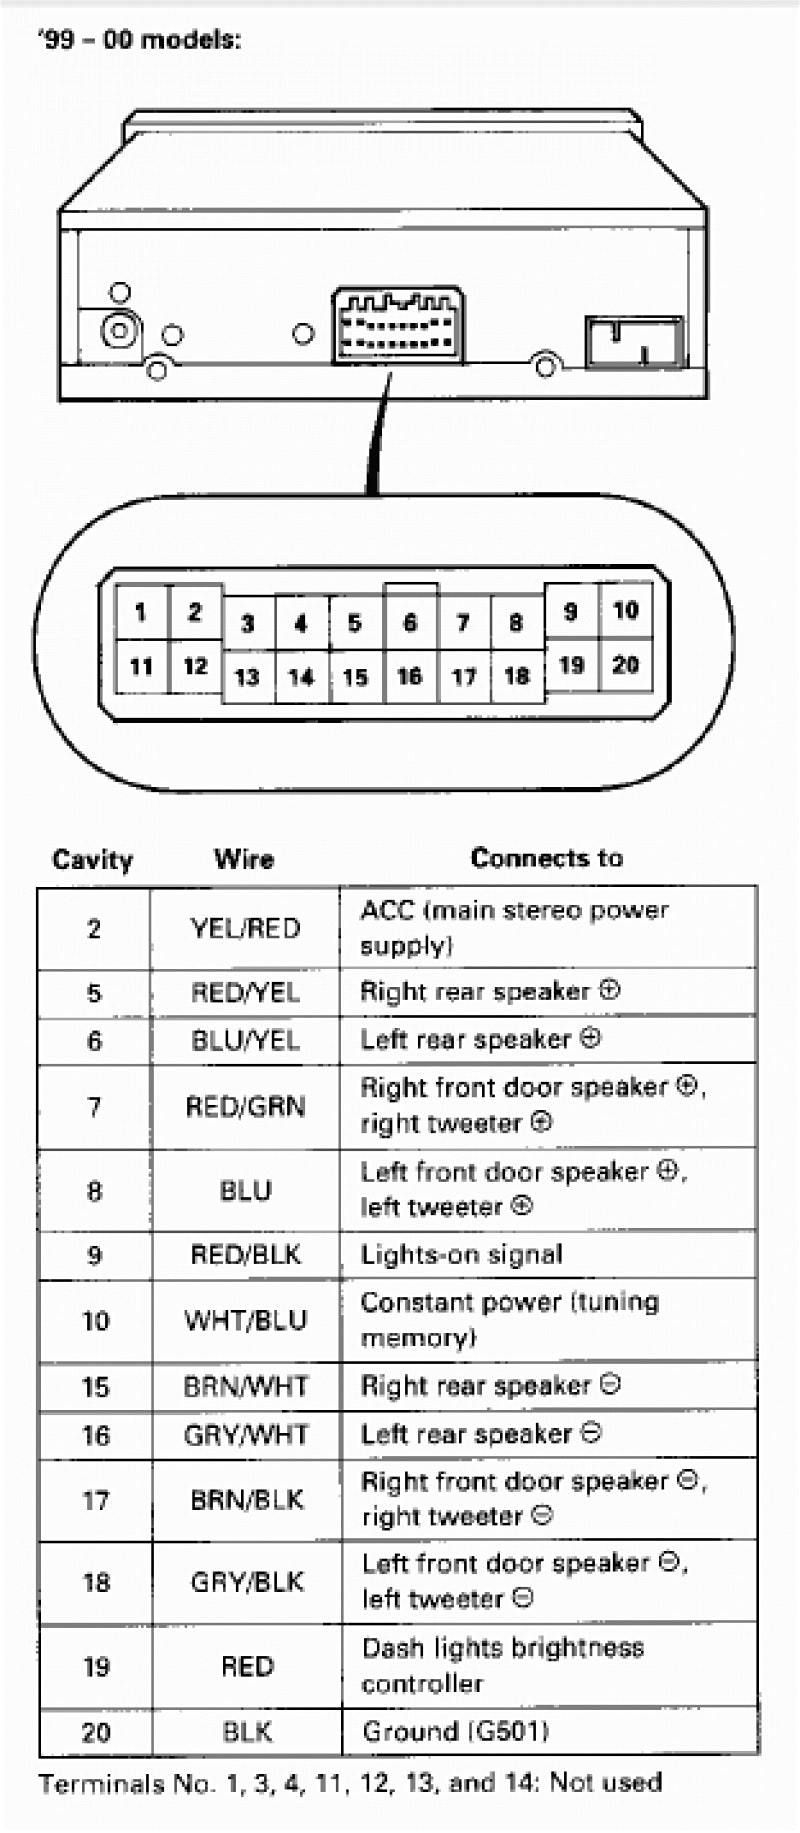 2000 honda civic radio wiring diagram Download-1995 honda civic radio wiring diagram sevimliler and 8-c